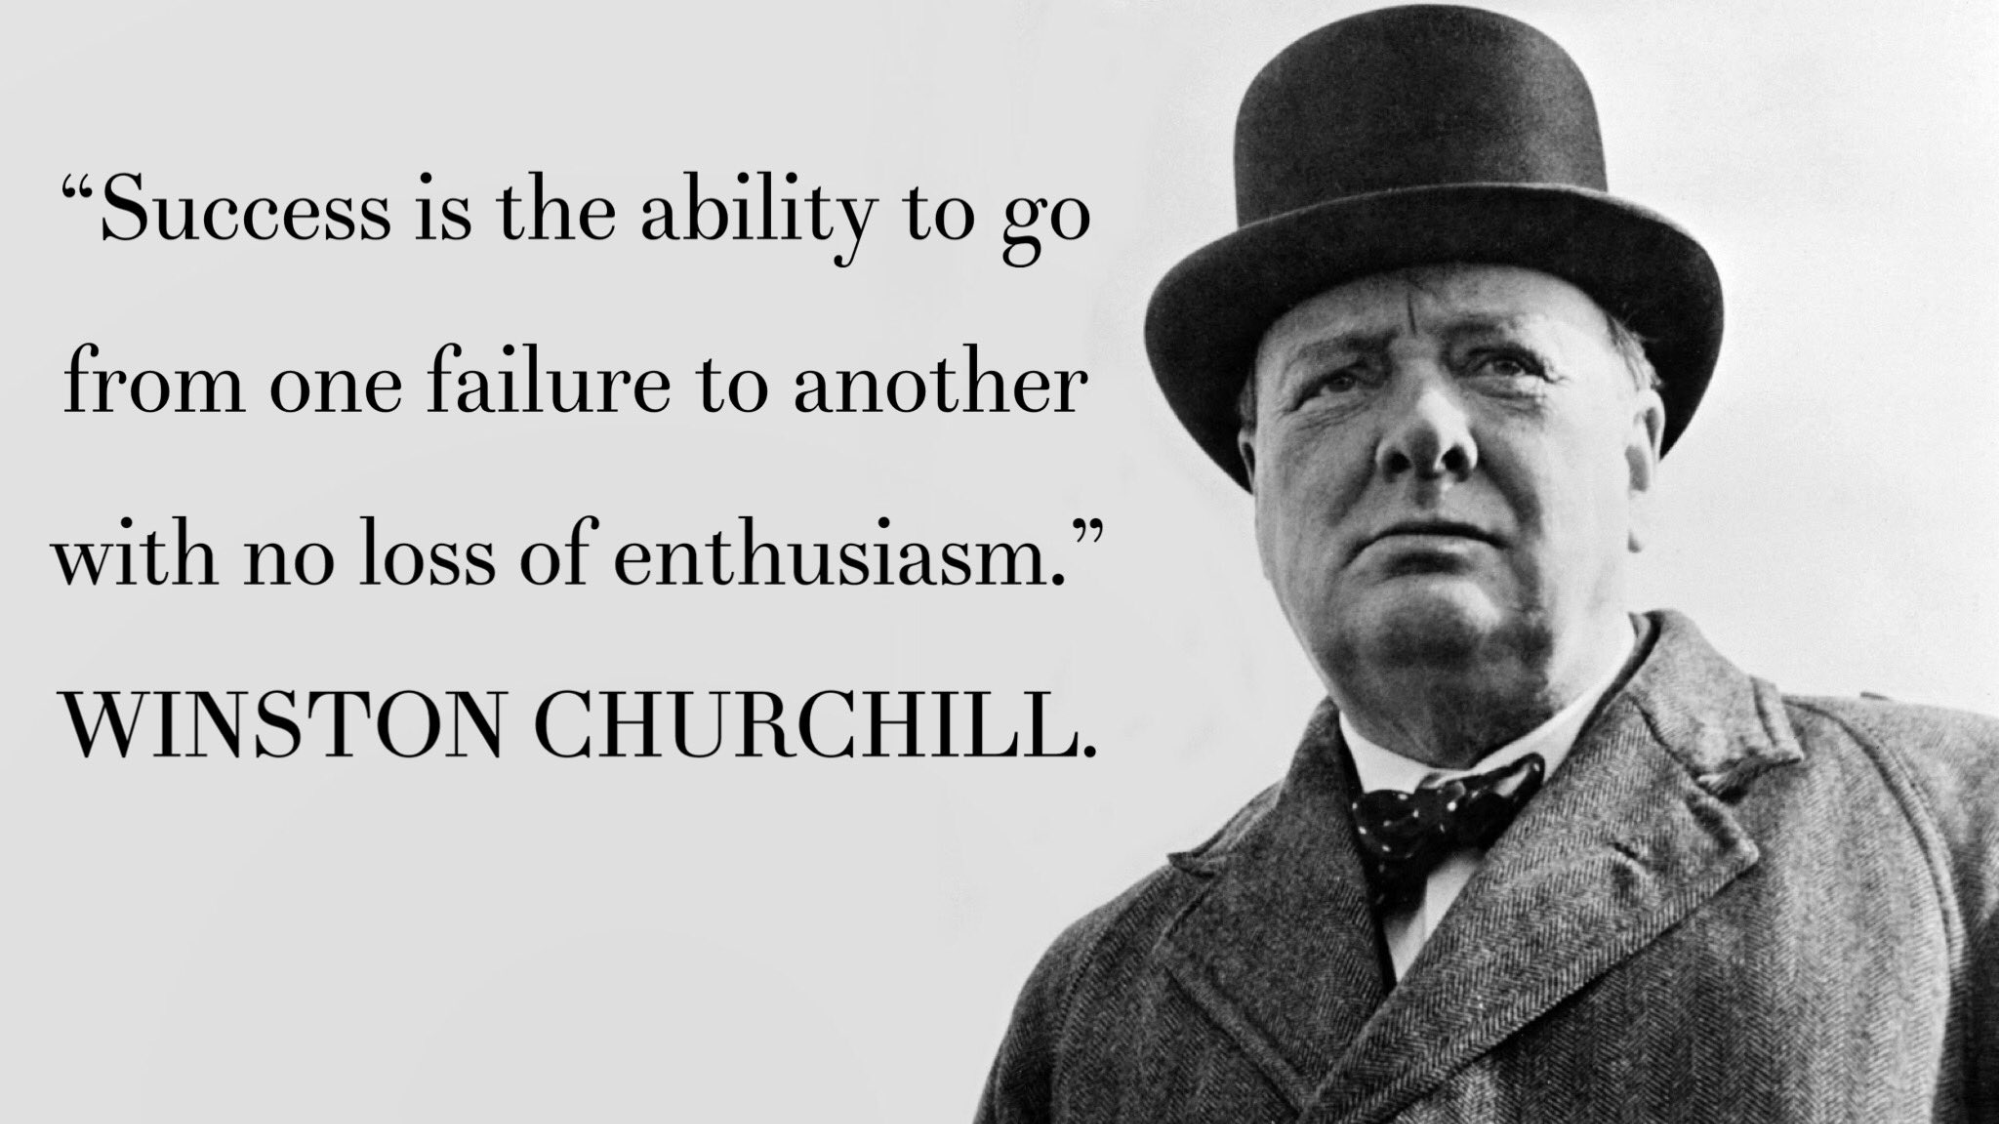 winston churchill quote - how to deal with disappointment